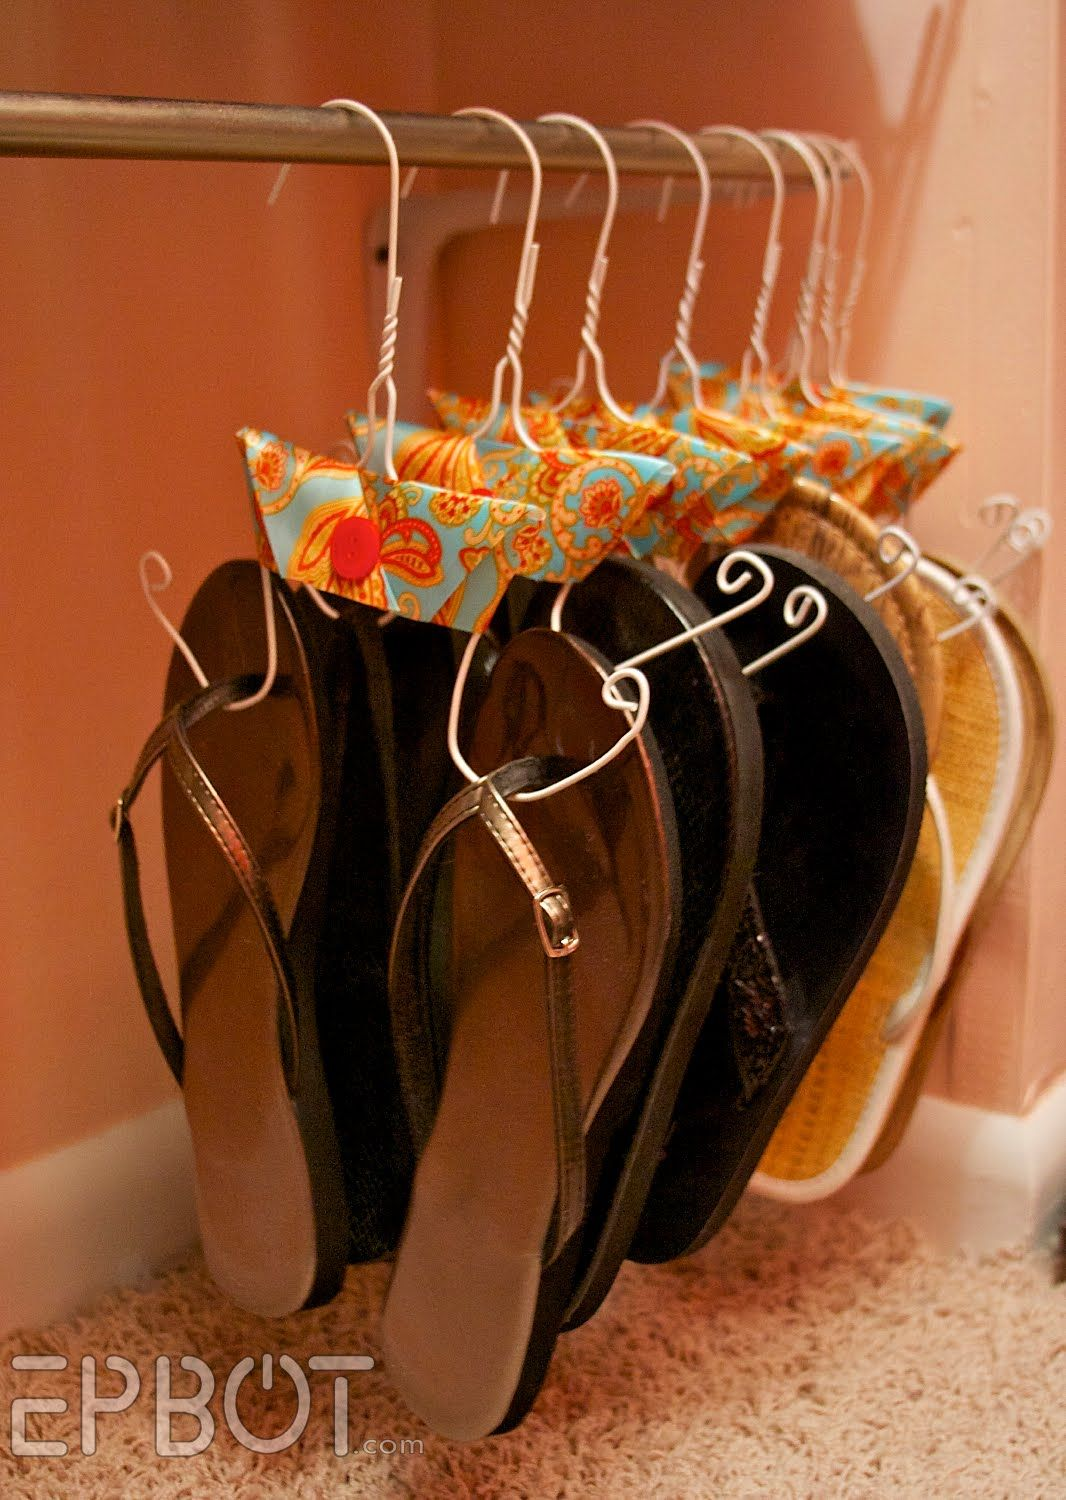 643a099b2d2a33 EPBOT - This is one of those practical and cute wire hanger crafts. I don t have  any closet space like shown